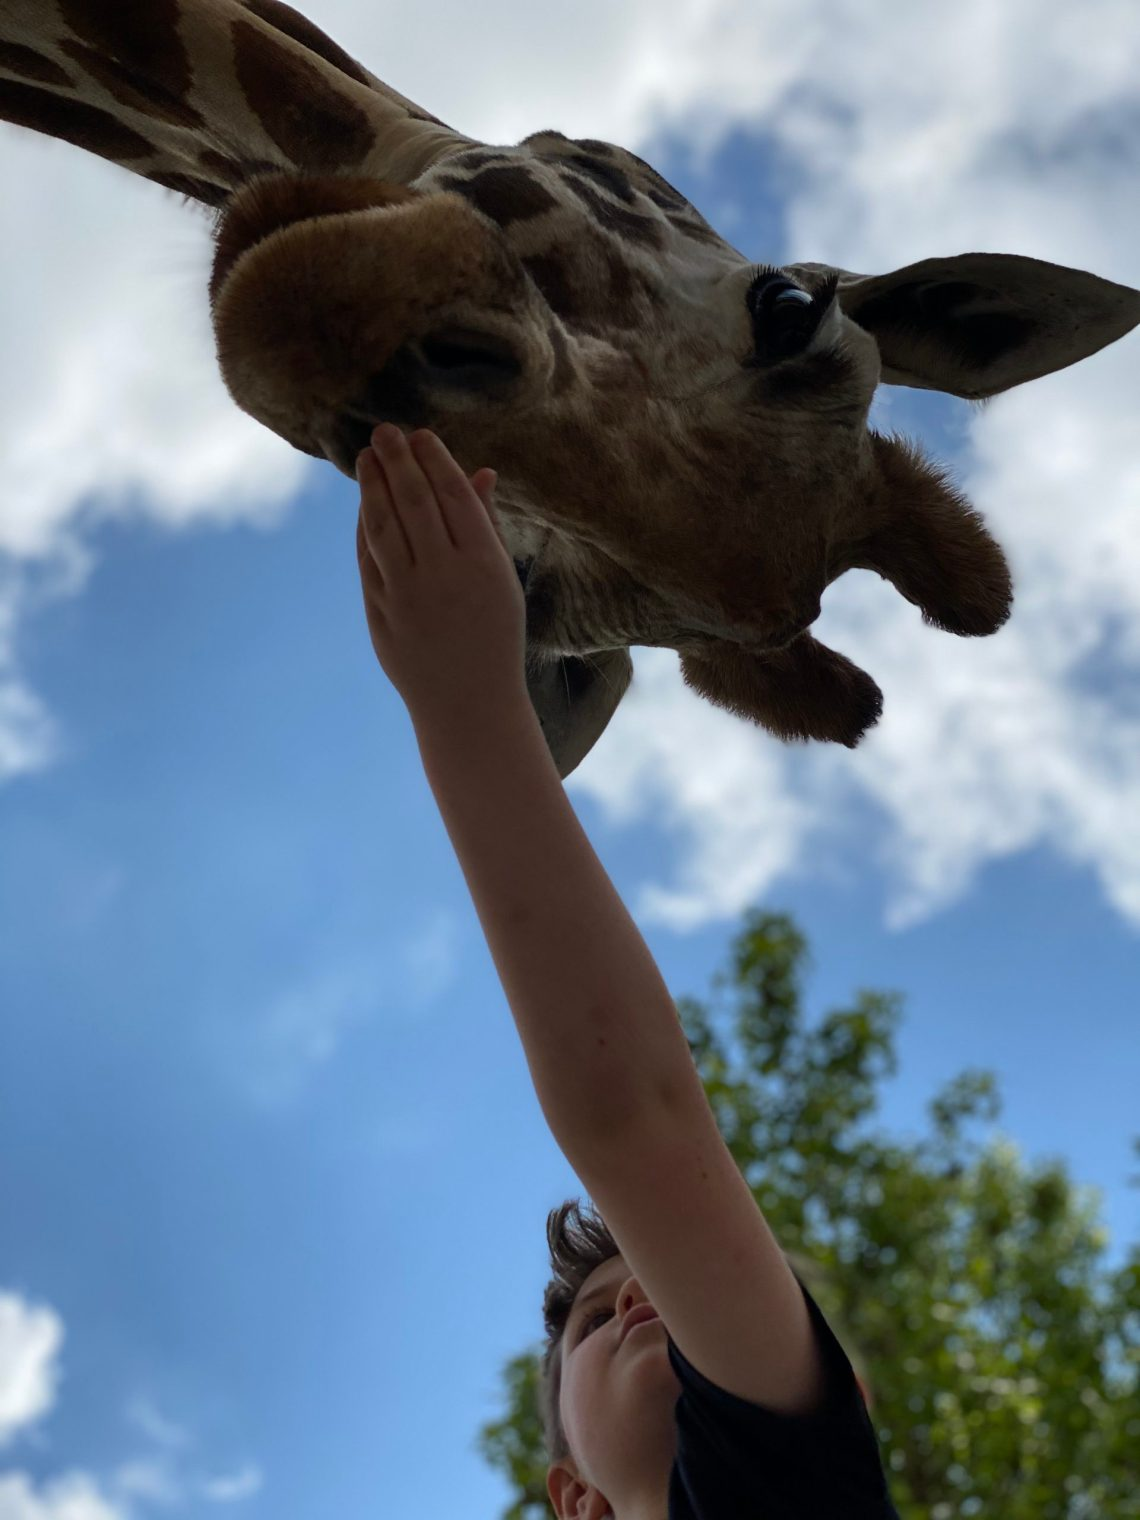 Lazy 5 Ranch - Drive Through Zoo in Mooresville NC - Things to Do With Kids- Day Trips and Family Travel in North Carolina